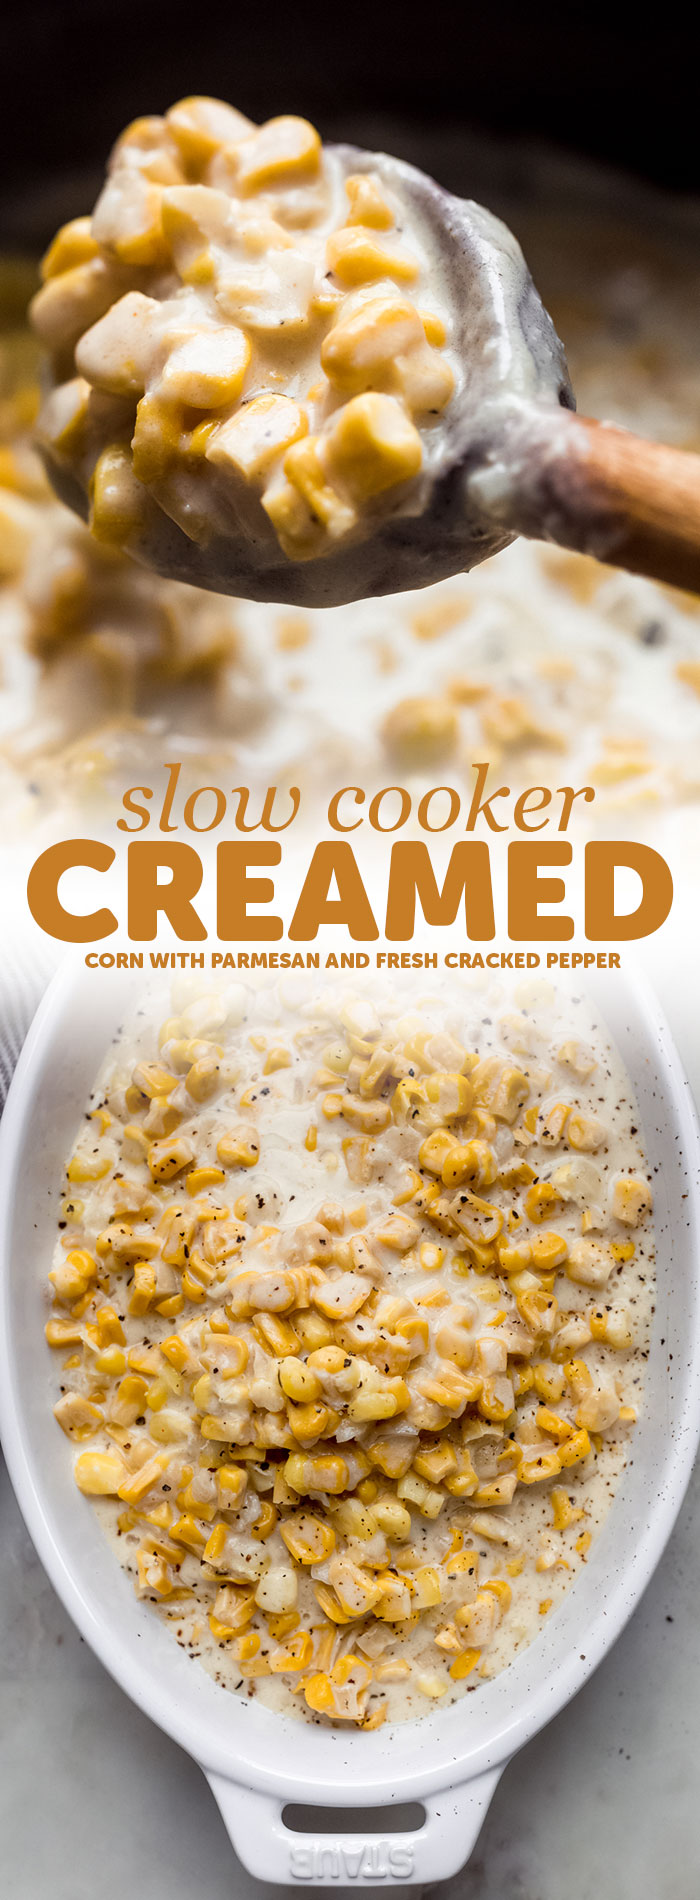 Slow cooker creamed corn is the perfect side dish for the Thanksgiving table! Made with sweet tender kernels of corn, in a velvety smooth parmesan cream sauce. It comes together in a slow cooker and you can customize it however you like! #creamedcorn #thanksgiving #sidedishes #slowcookercreamedcorn #easysides #christmas | Littlespicejar.com